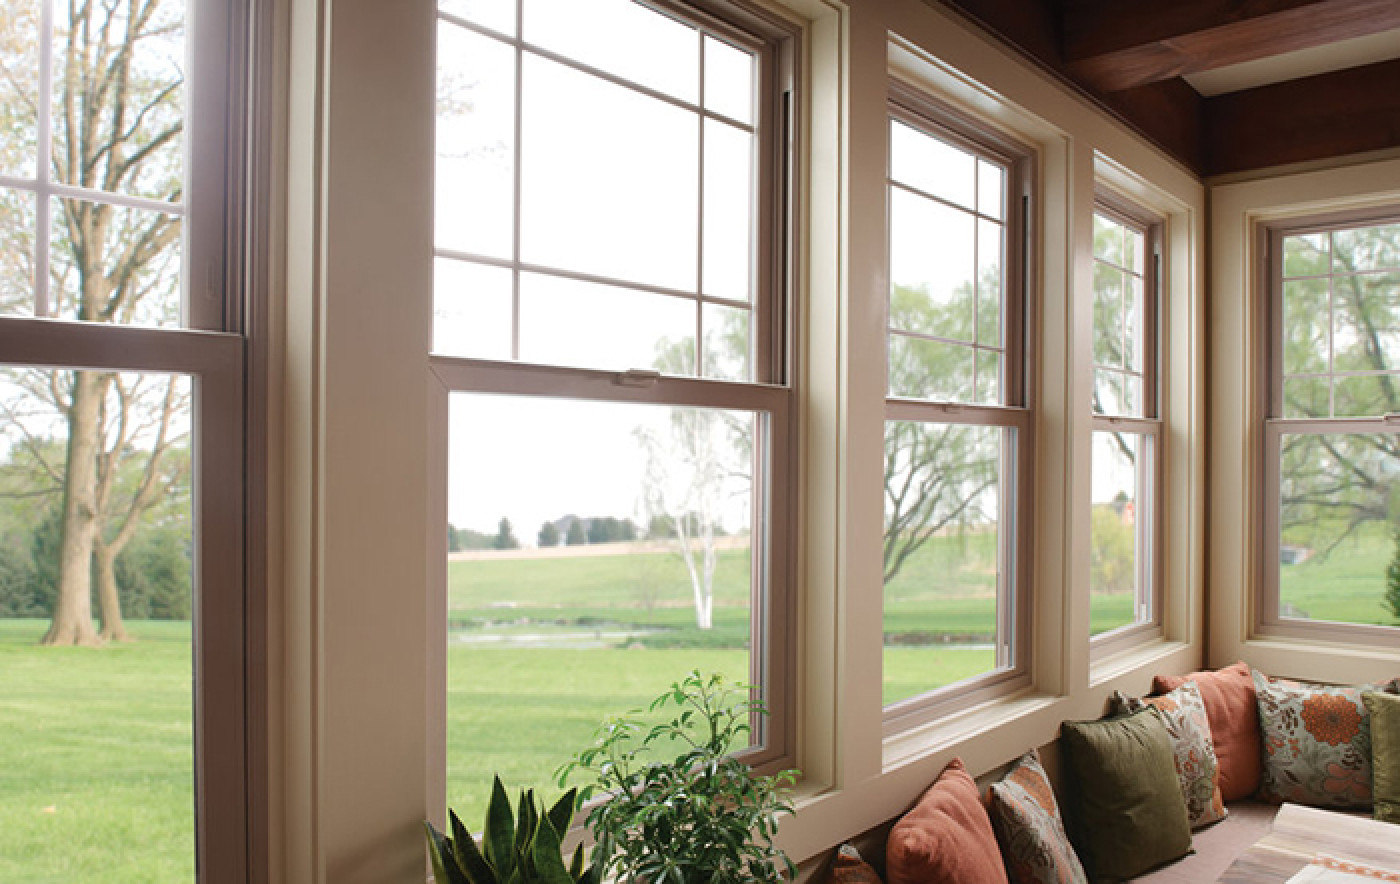 The Best Choice For Window Installation in Atlanta